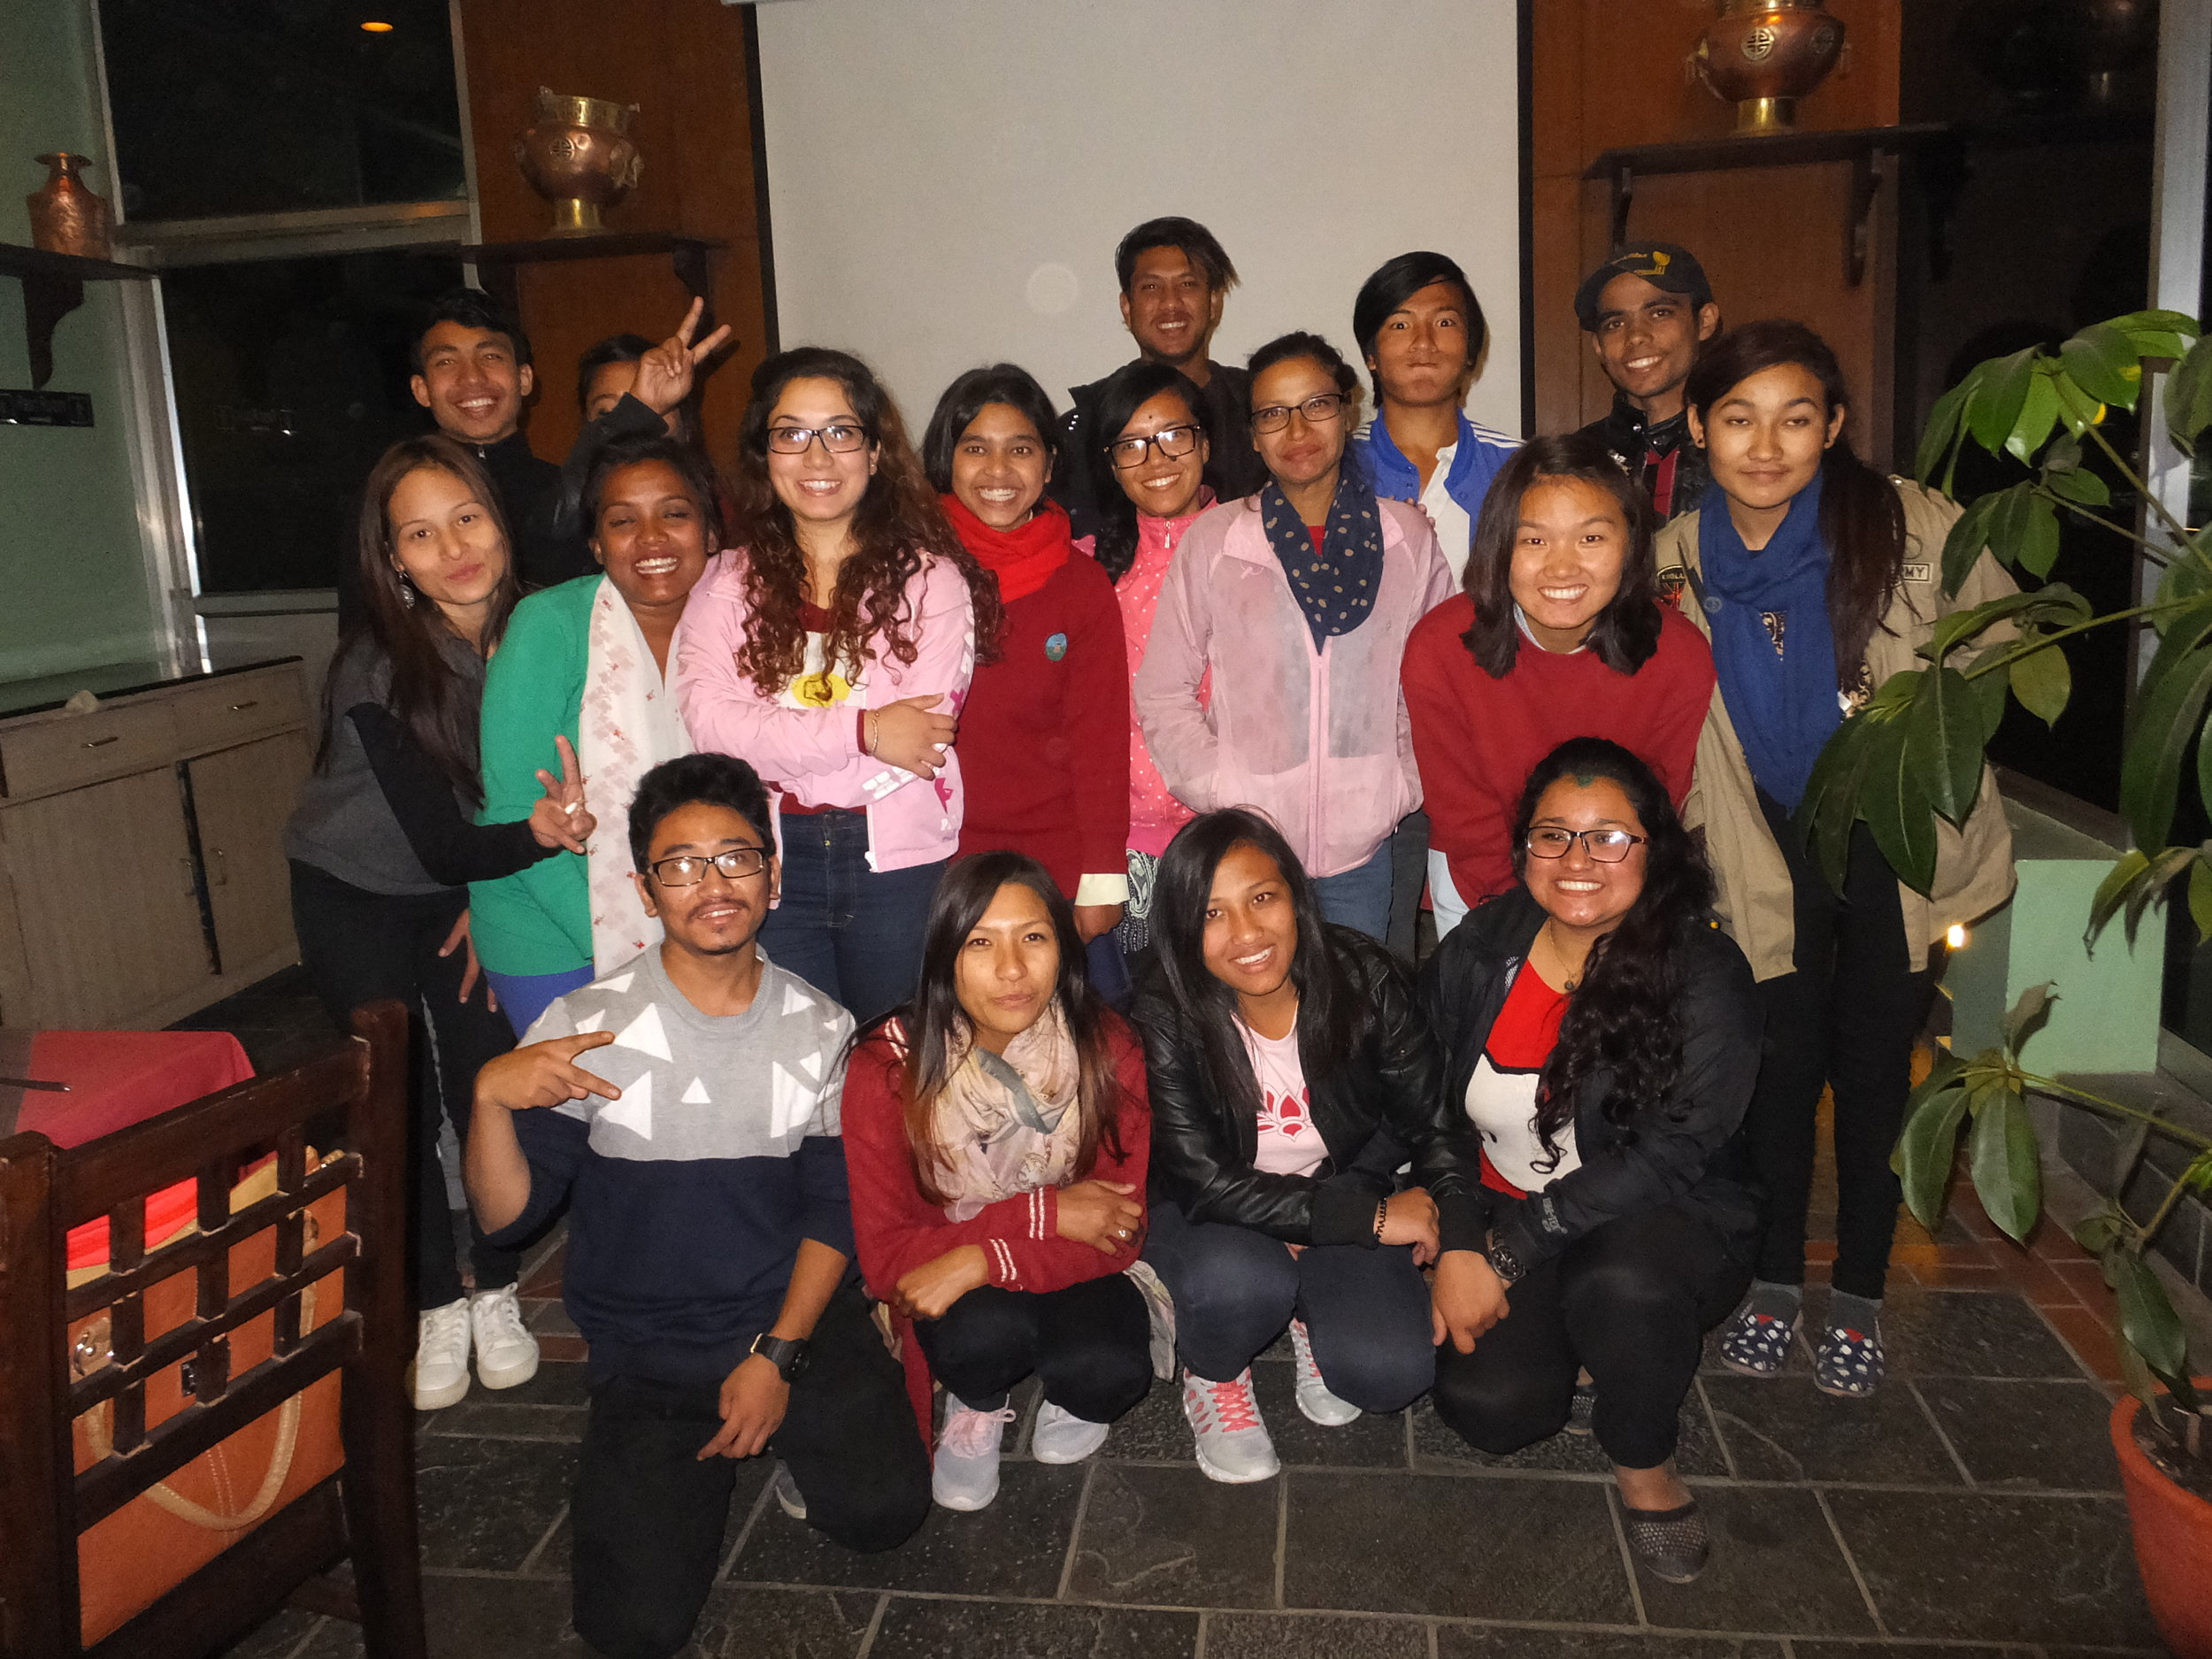 University children gather for pizza and fun evening of reunion!